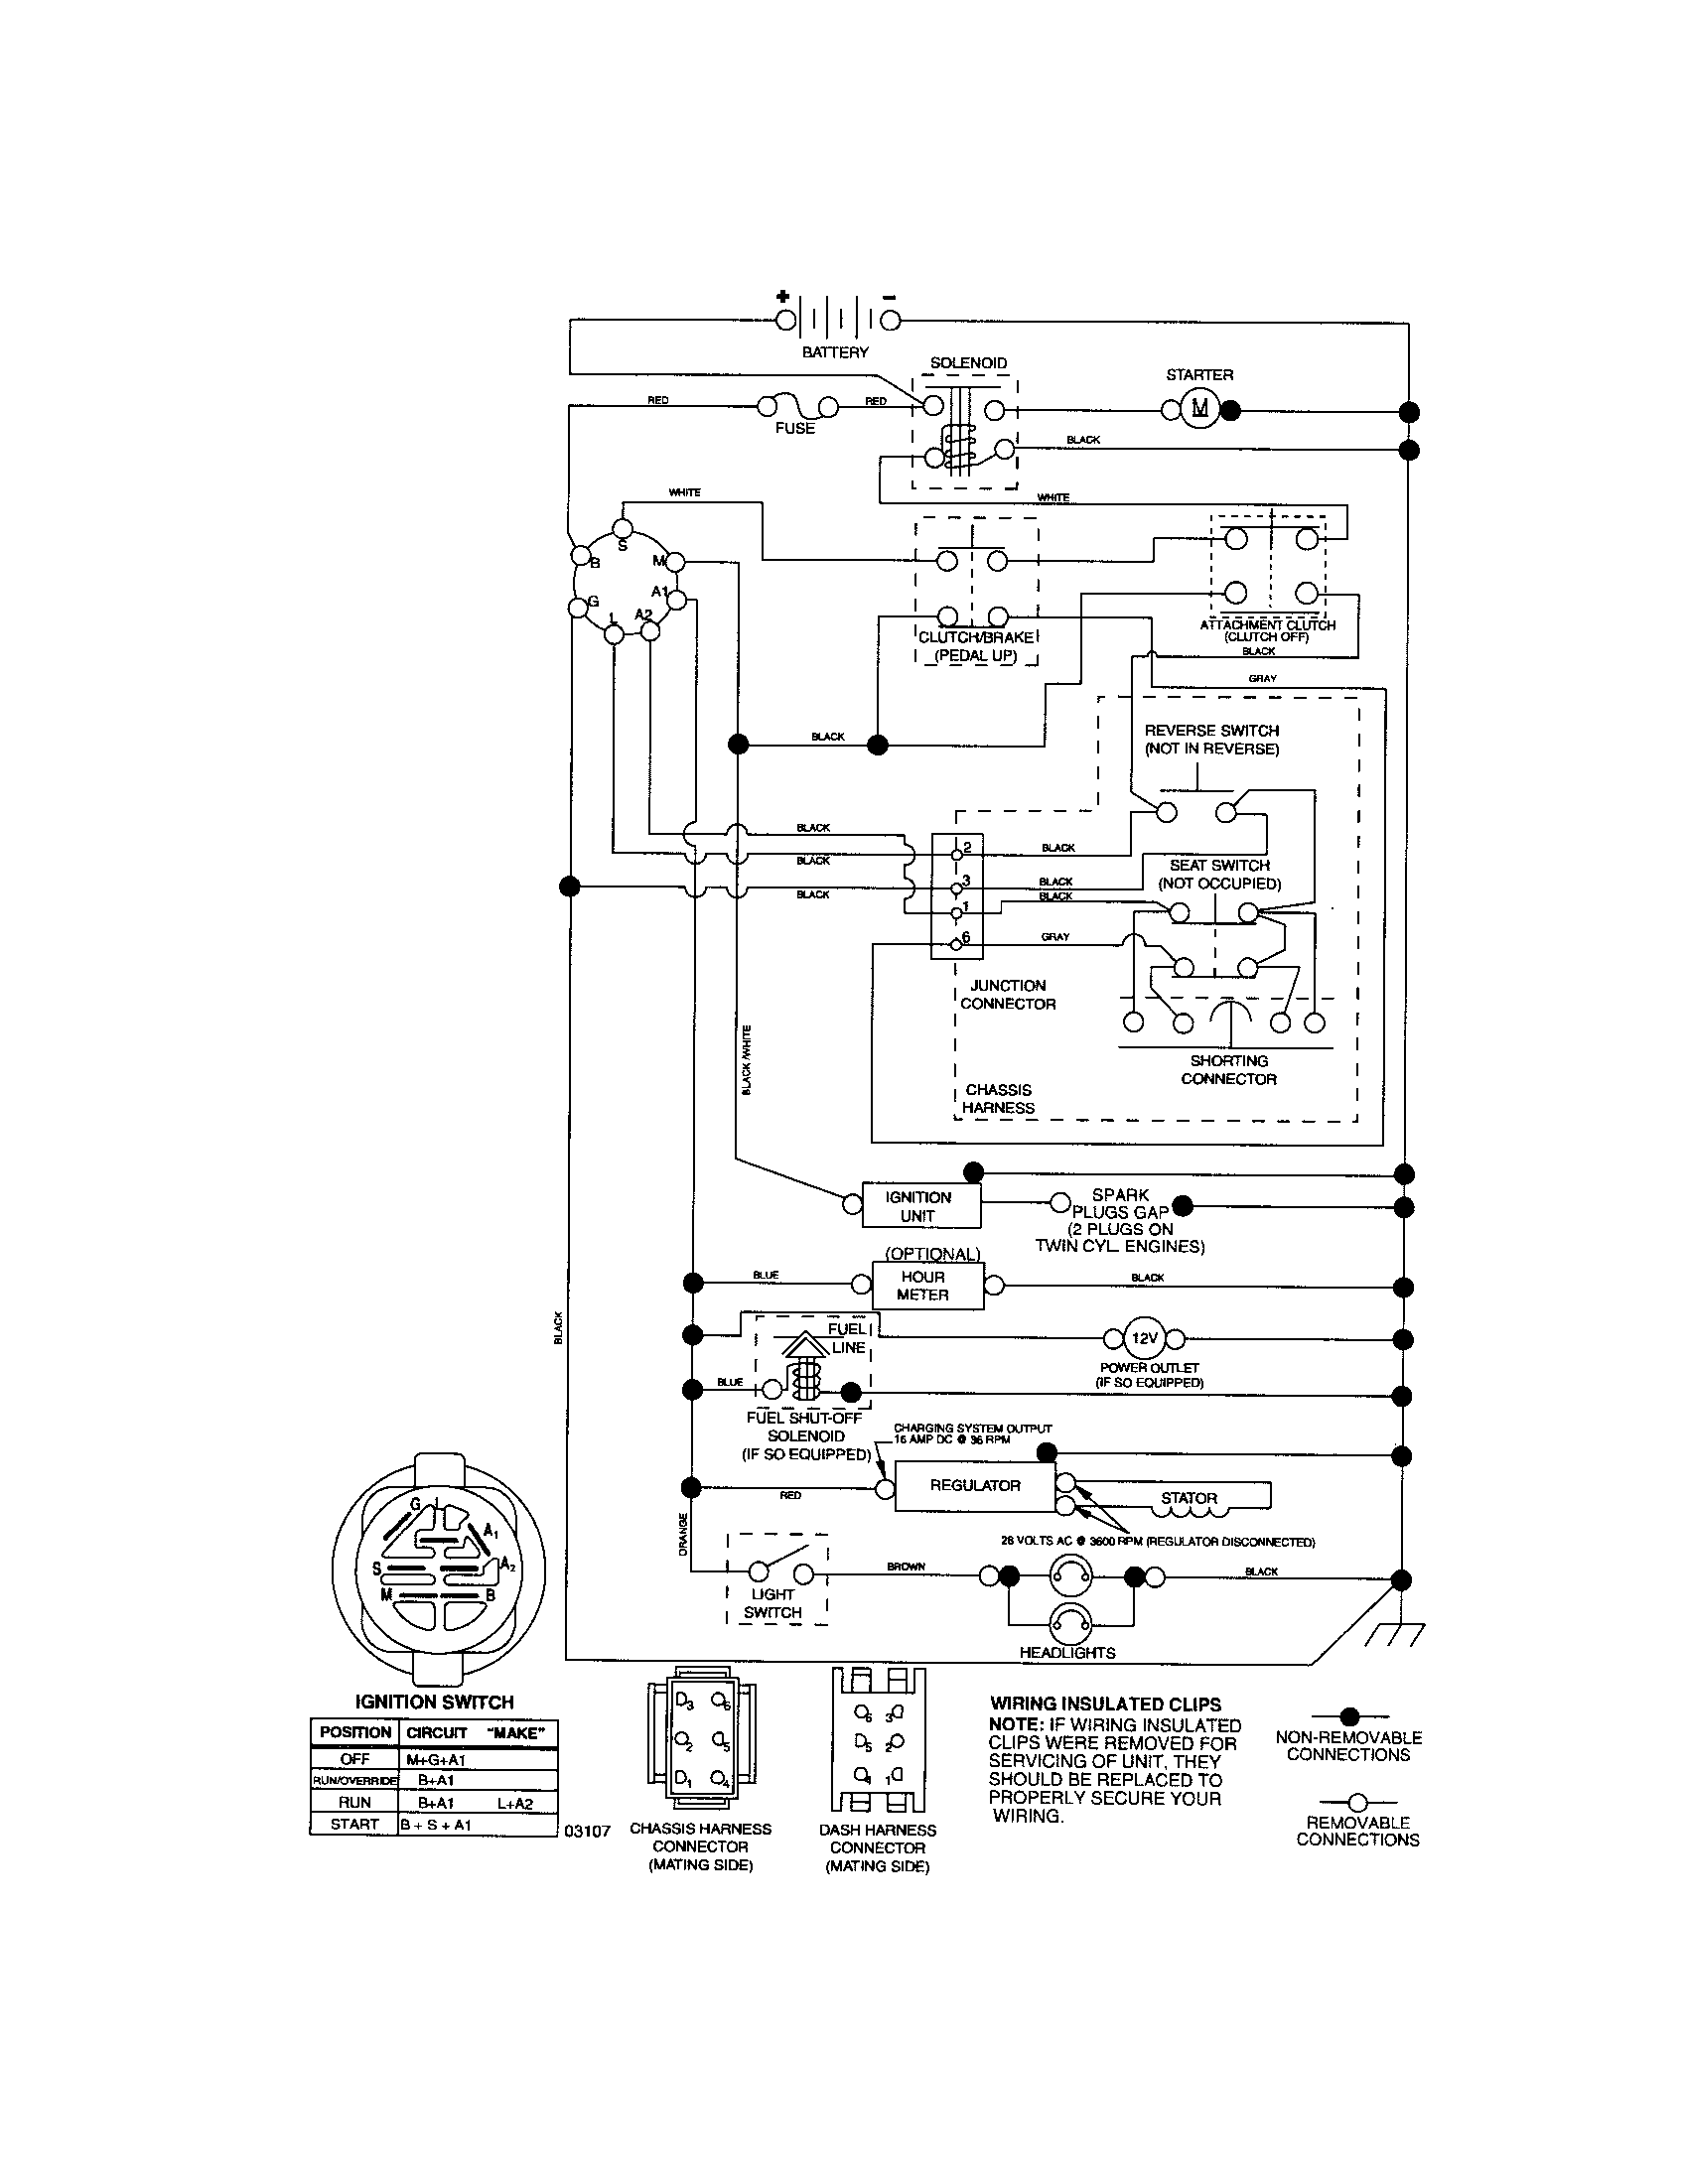 craftsman riding mower electrical diagram wiring diagram rh pinterest com 1970 Ford F100 Wiring Diagram F150 Wiring Diagram